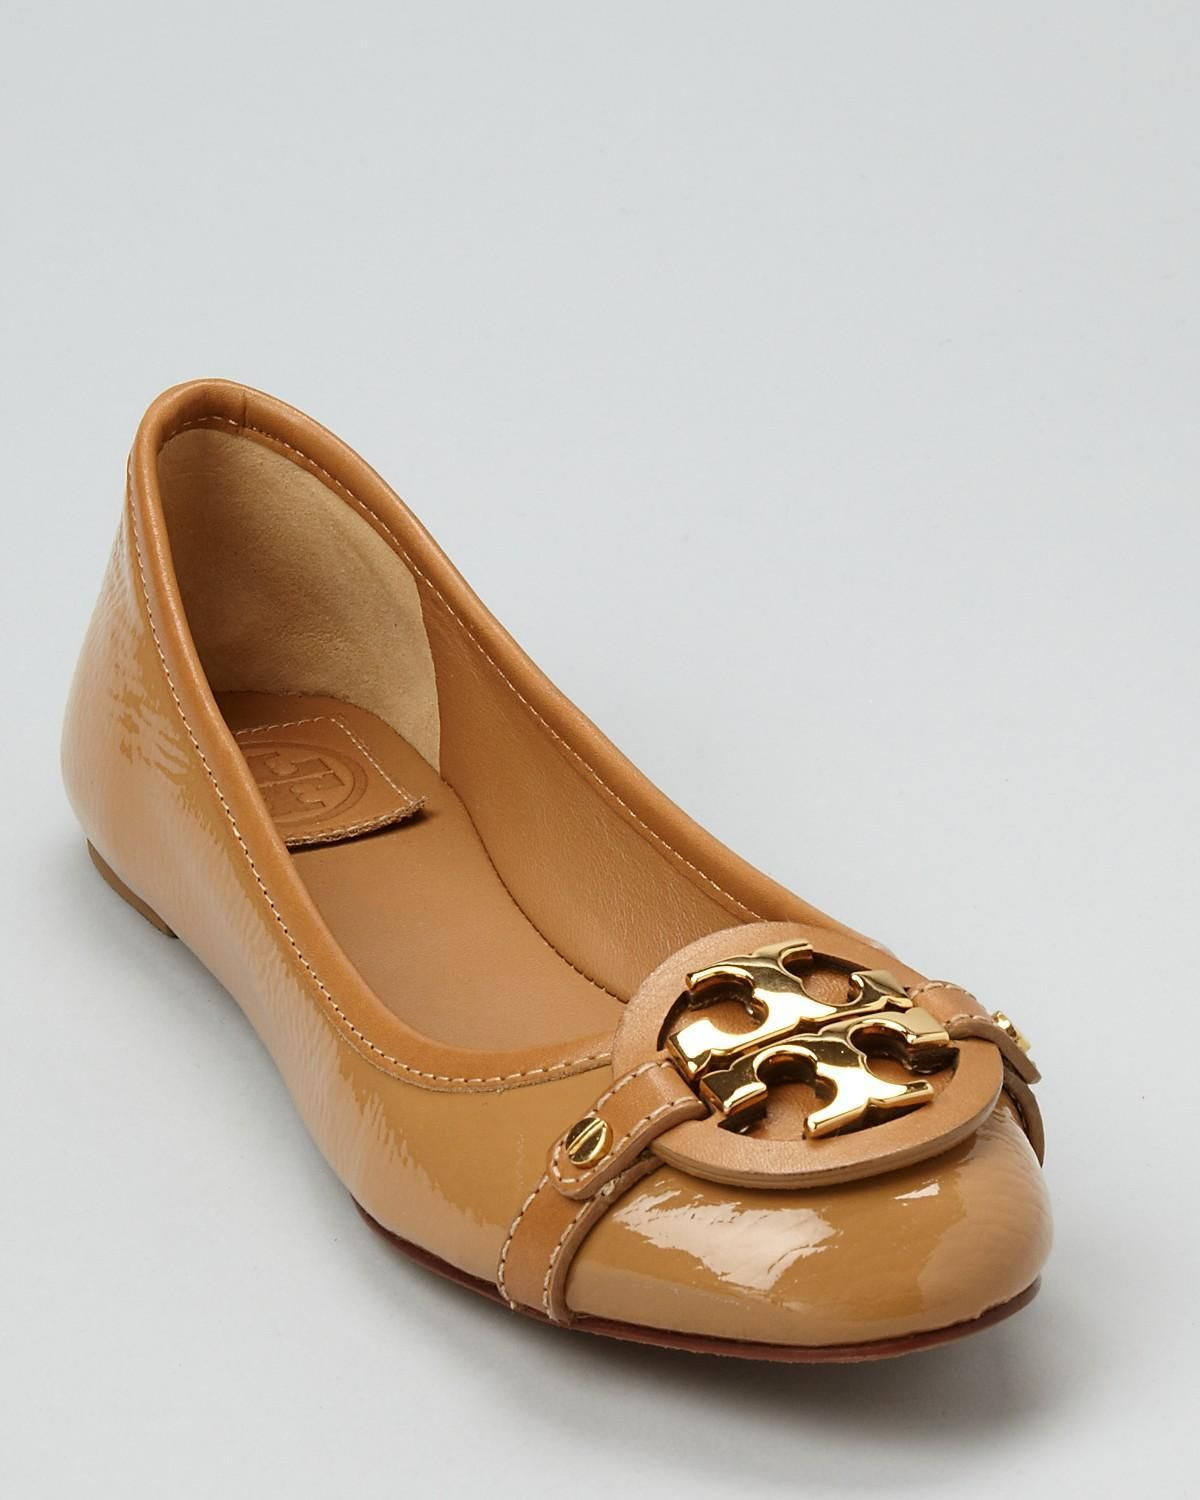 33360645258 Tory Burch Aaden Ballet Flats - love these  wouldn t they be perfect with a  navy blazer and jeans